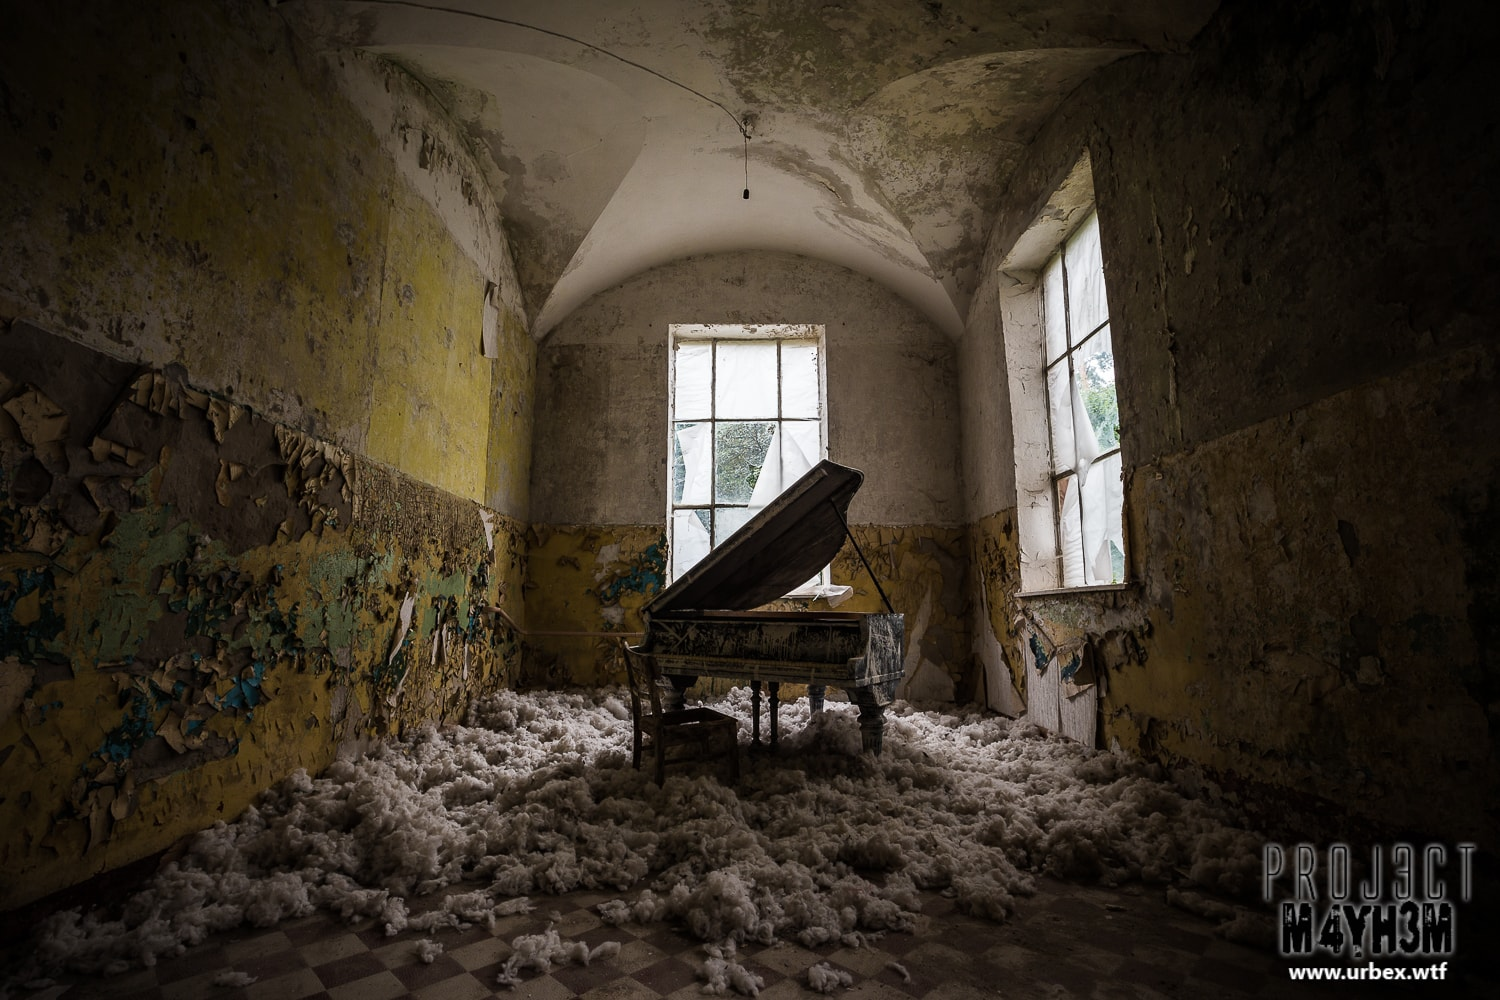 5. Unidentified Grand Piano